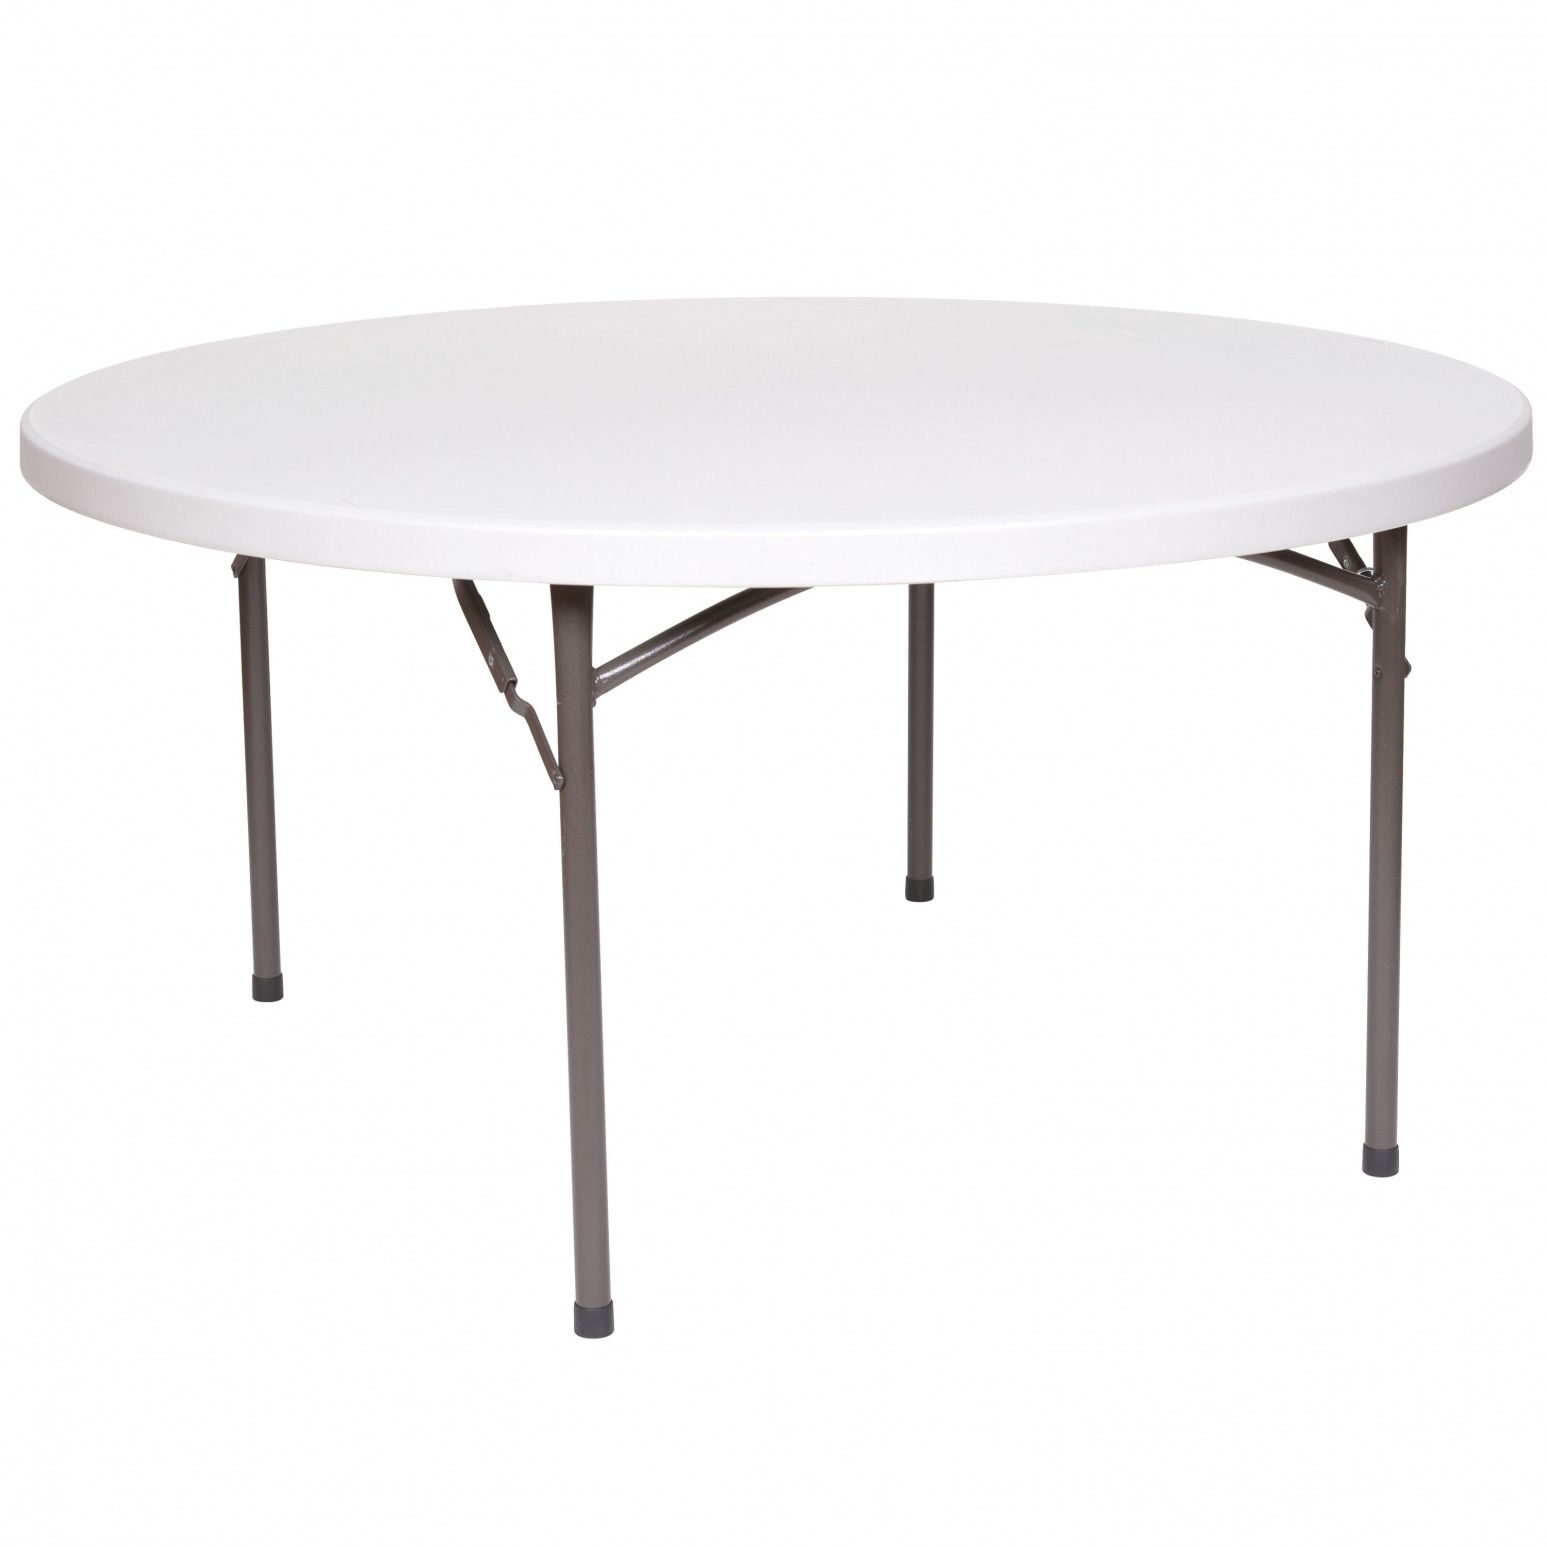 - Pin By Annora On Round End Table Round Folding Table, 60 Inch